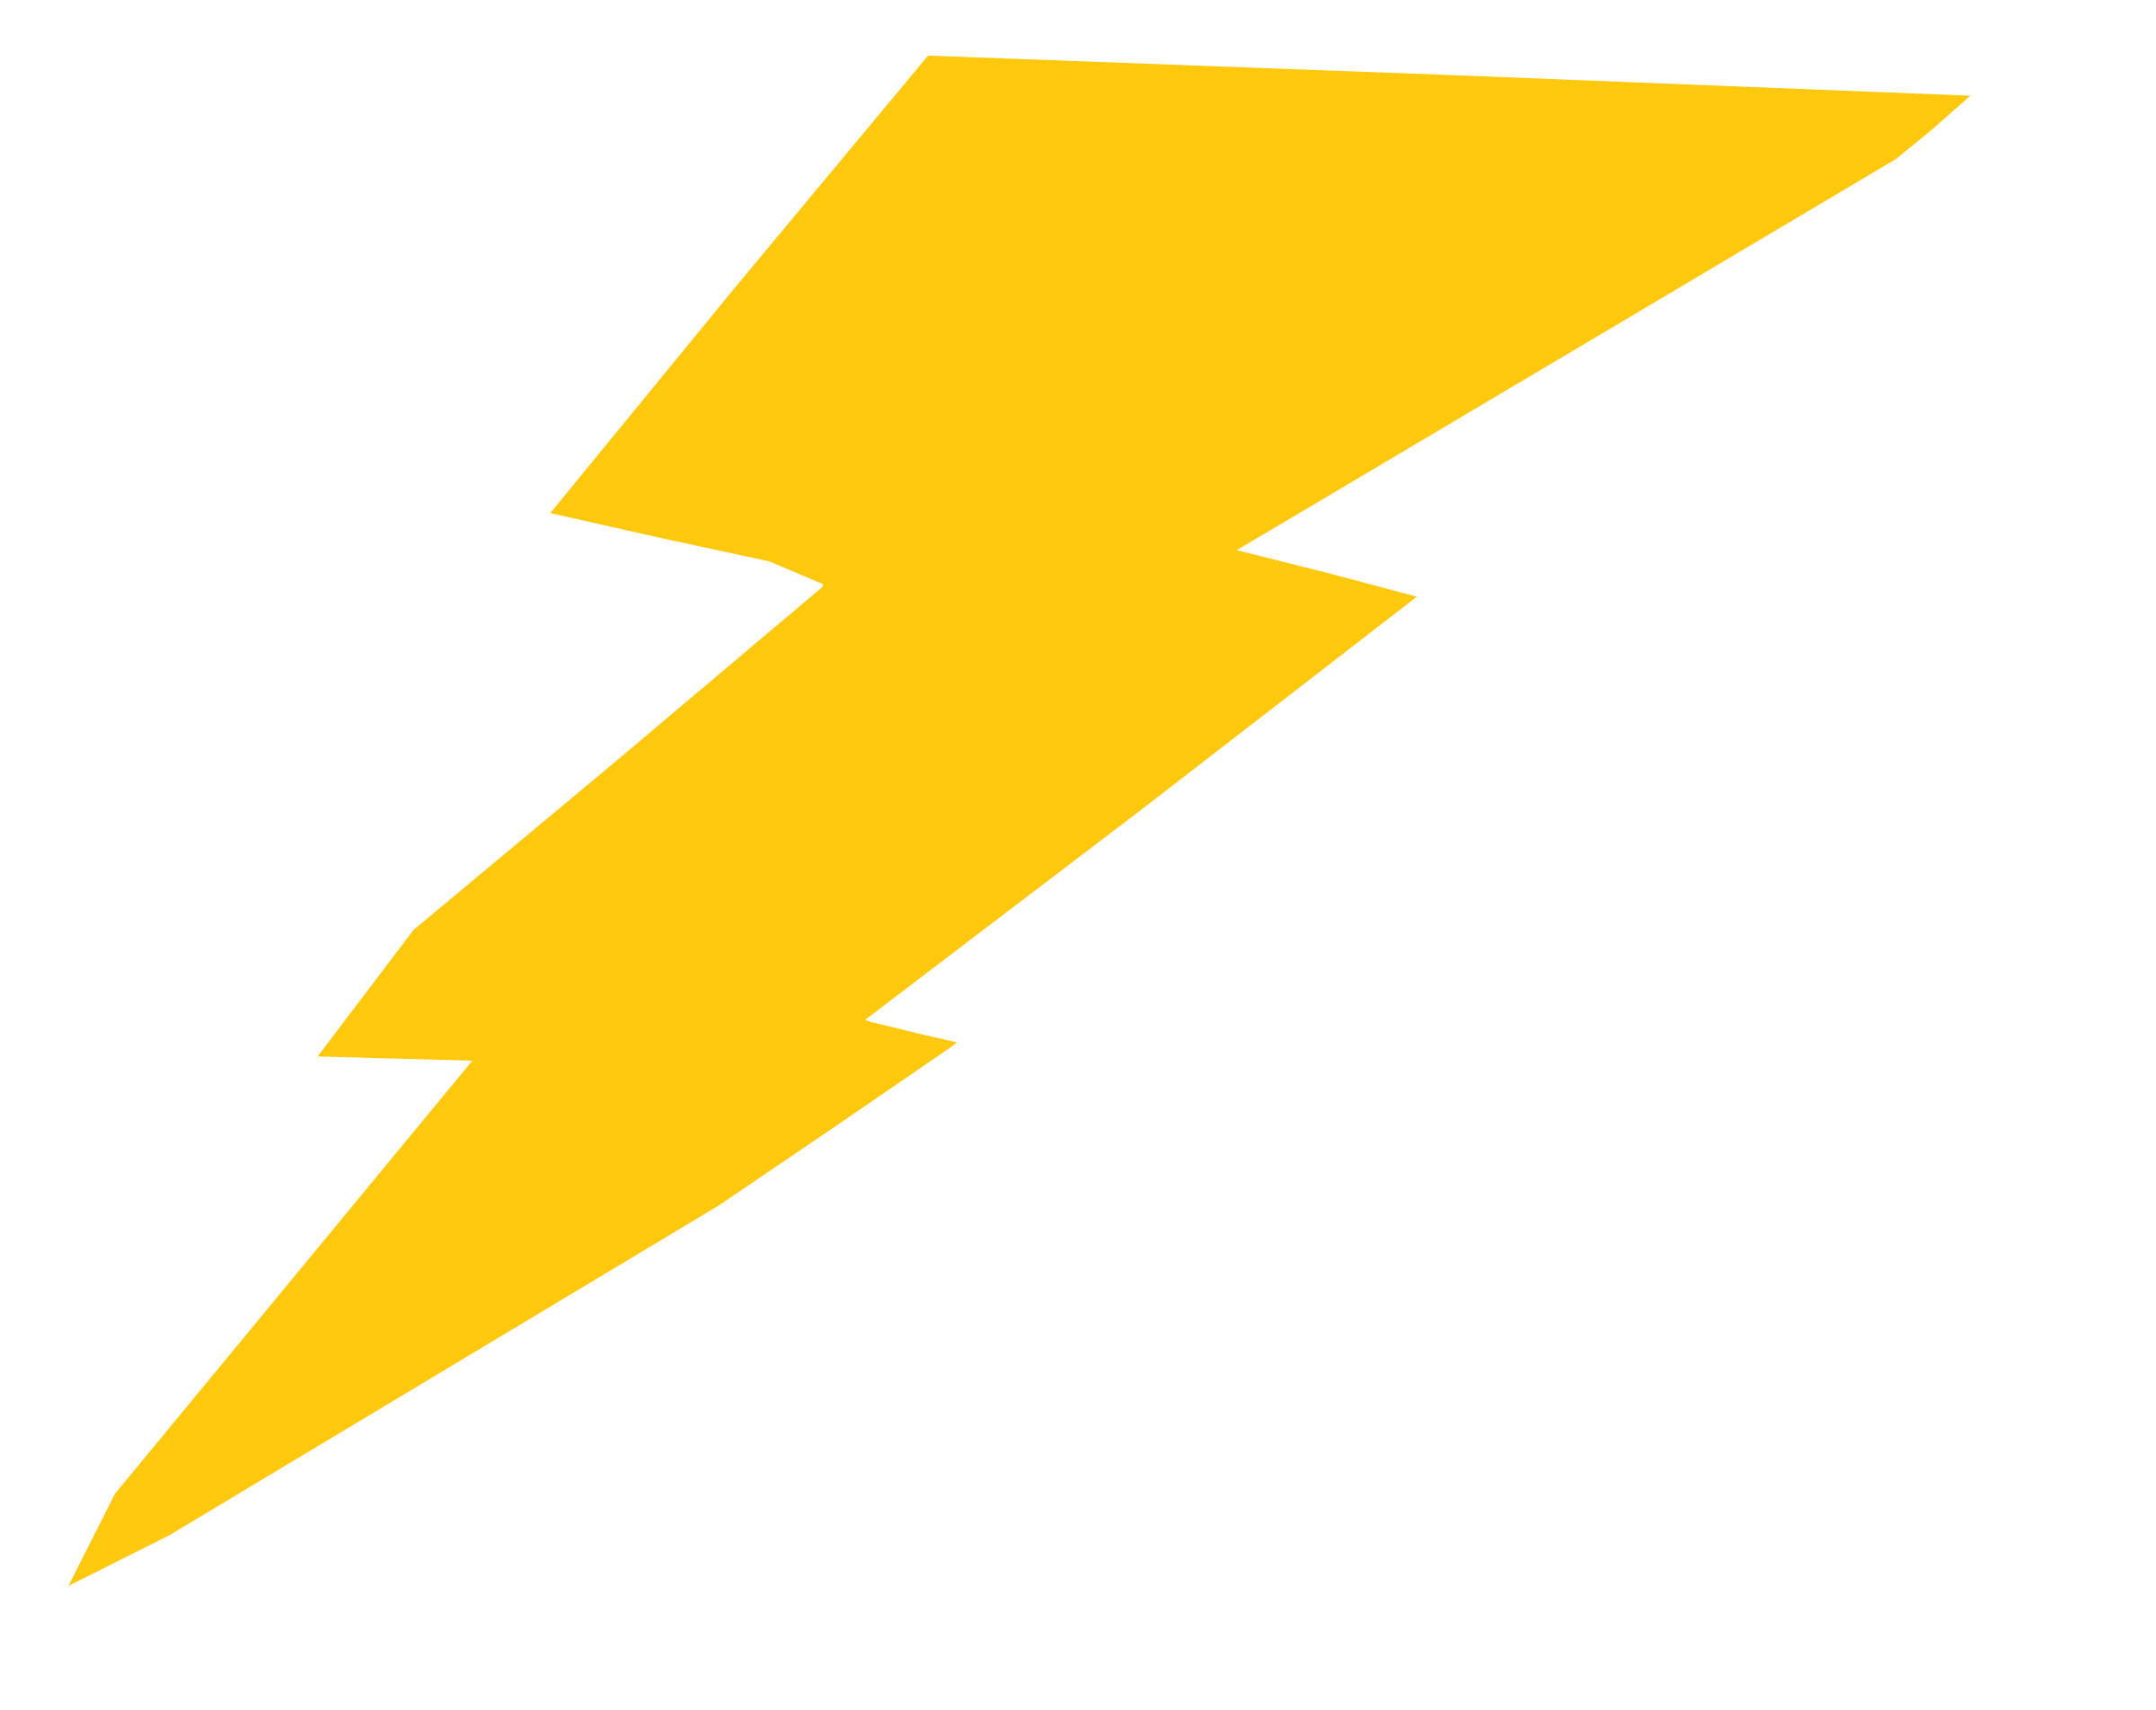 Electric clipart lighting bolt. Democraciaejustica lightning refixed